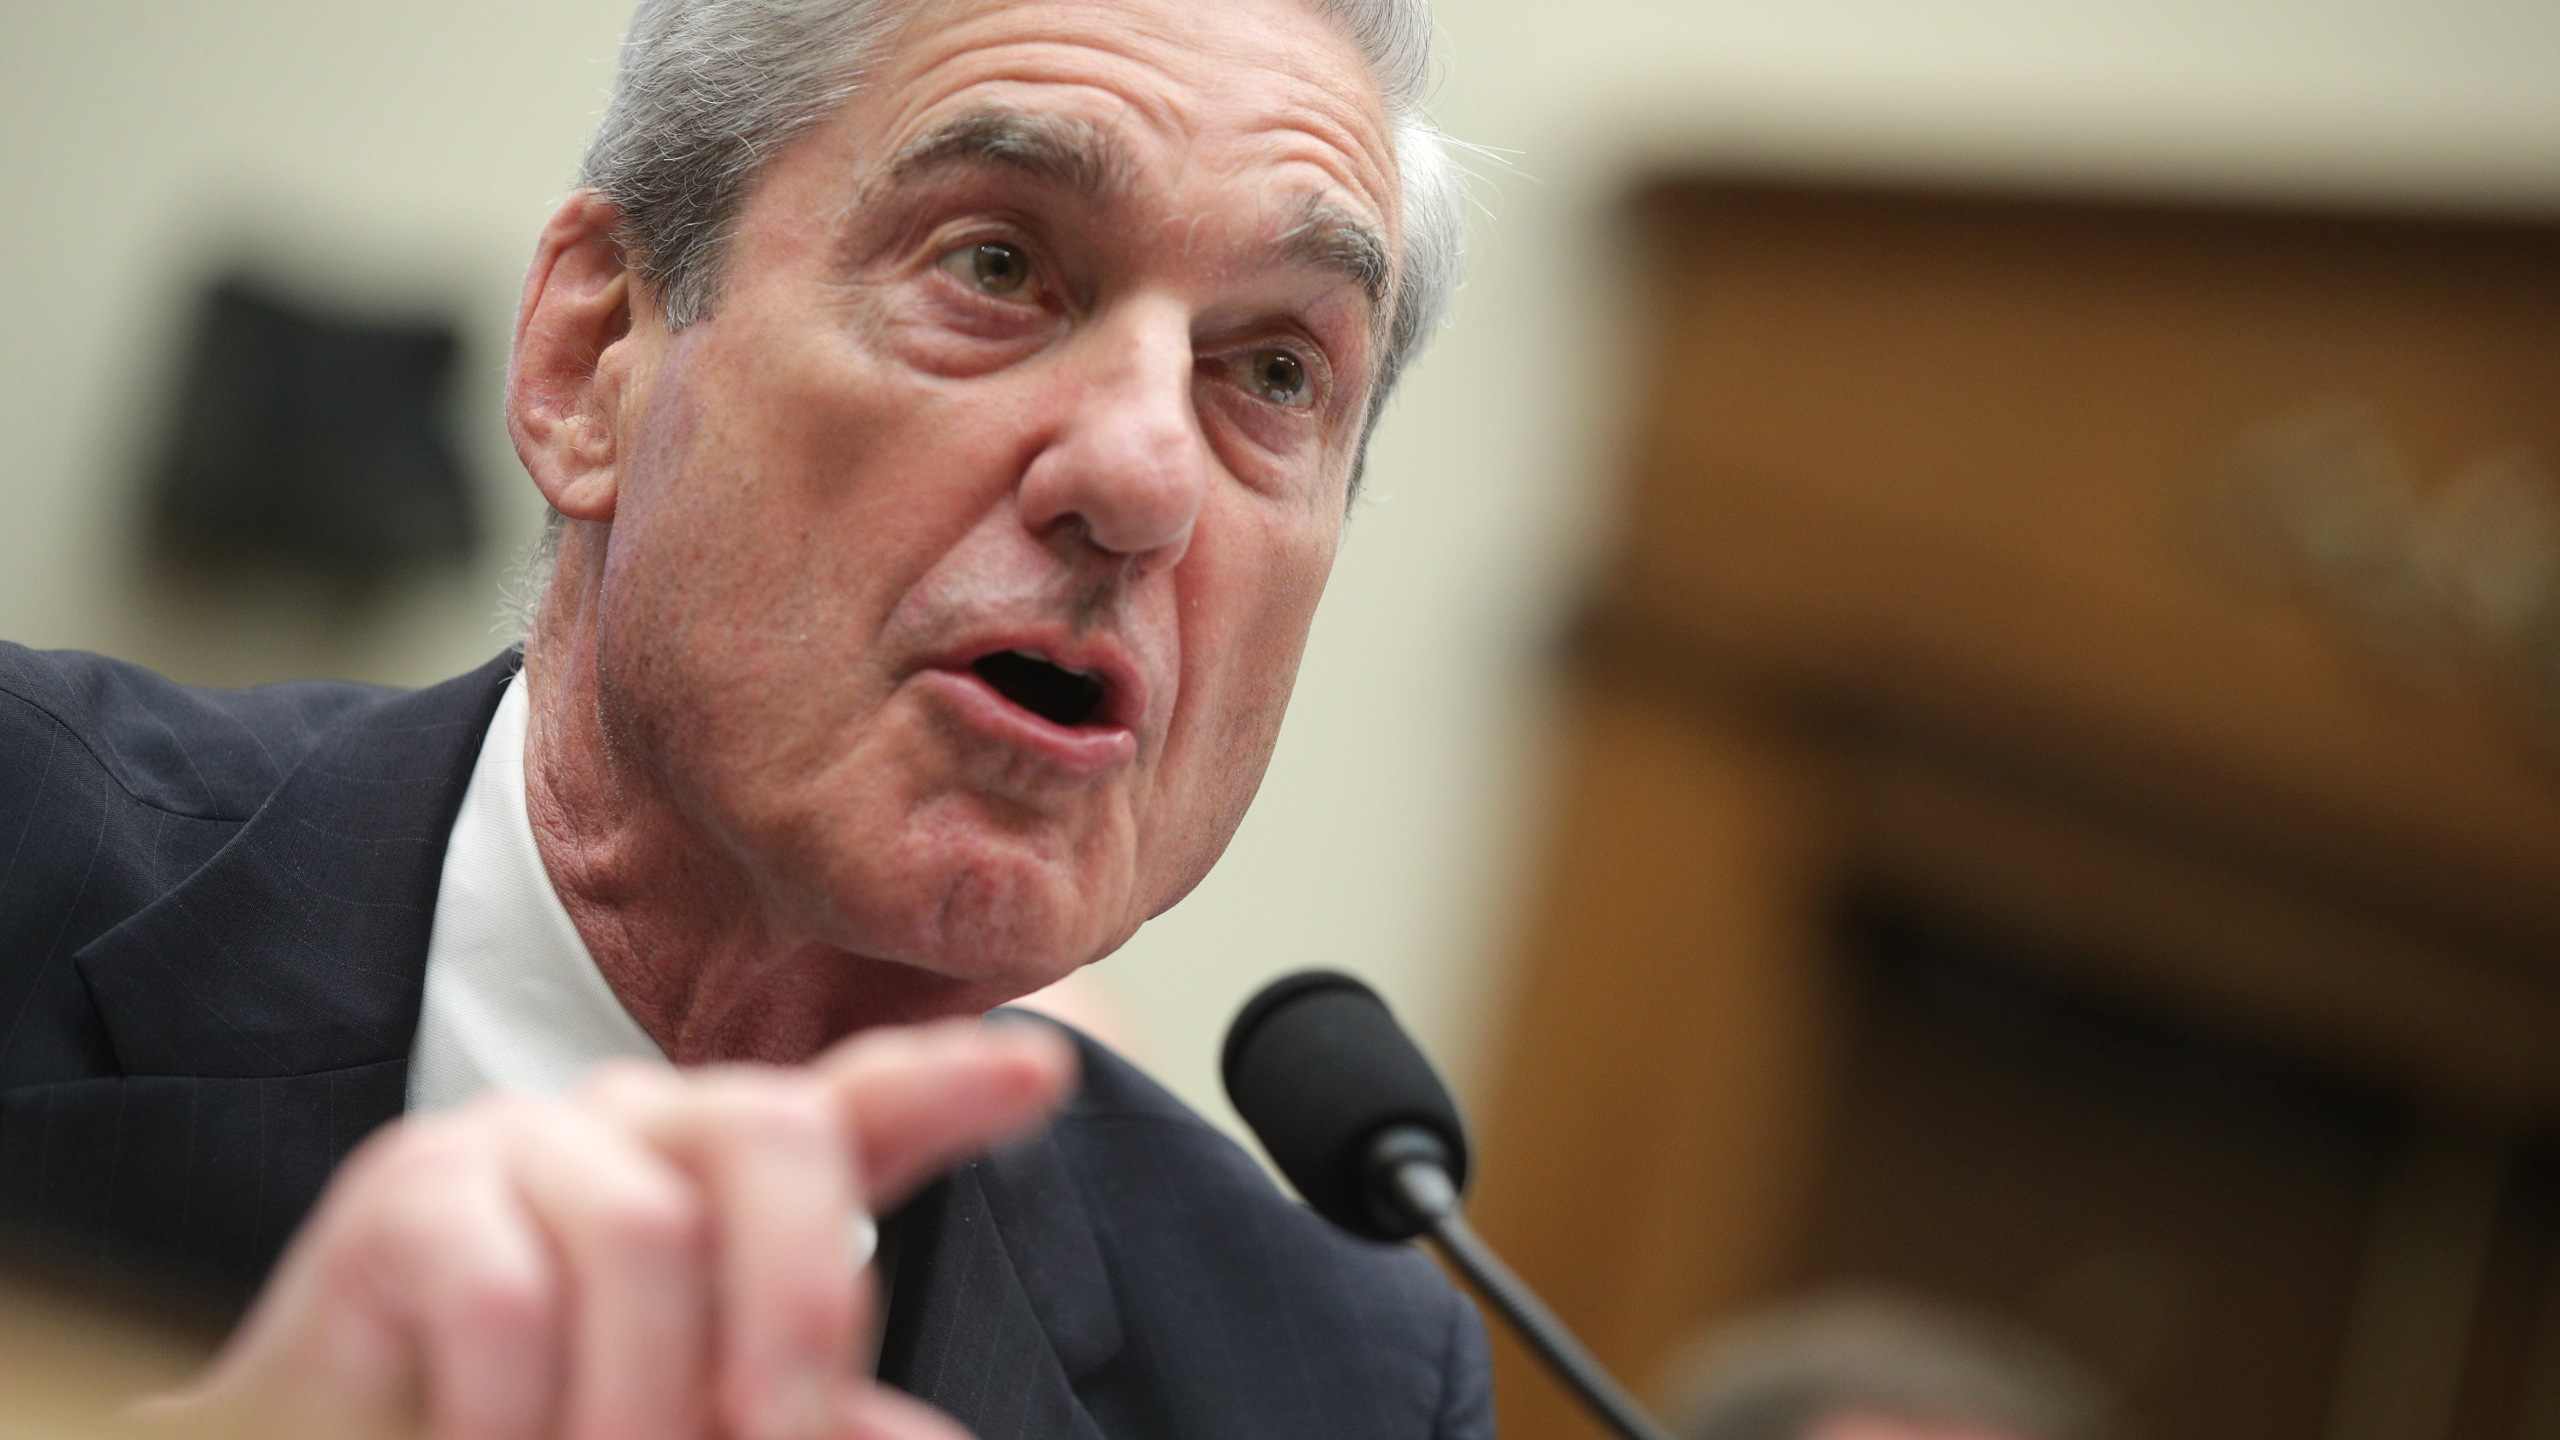 Former Special Counsel Robert Mueller testifies before the House Intelligence Committee about his report on Russian interference in the 2016 presidential election in the Rayburn House Office Building, on July 24, 2019, in Washington, D.C. (Credit: Alex Wong/Getty Images)